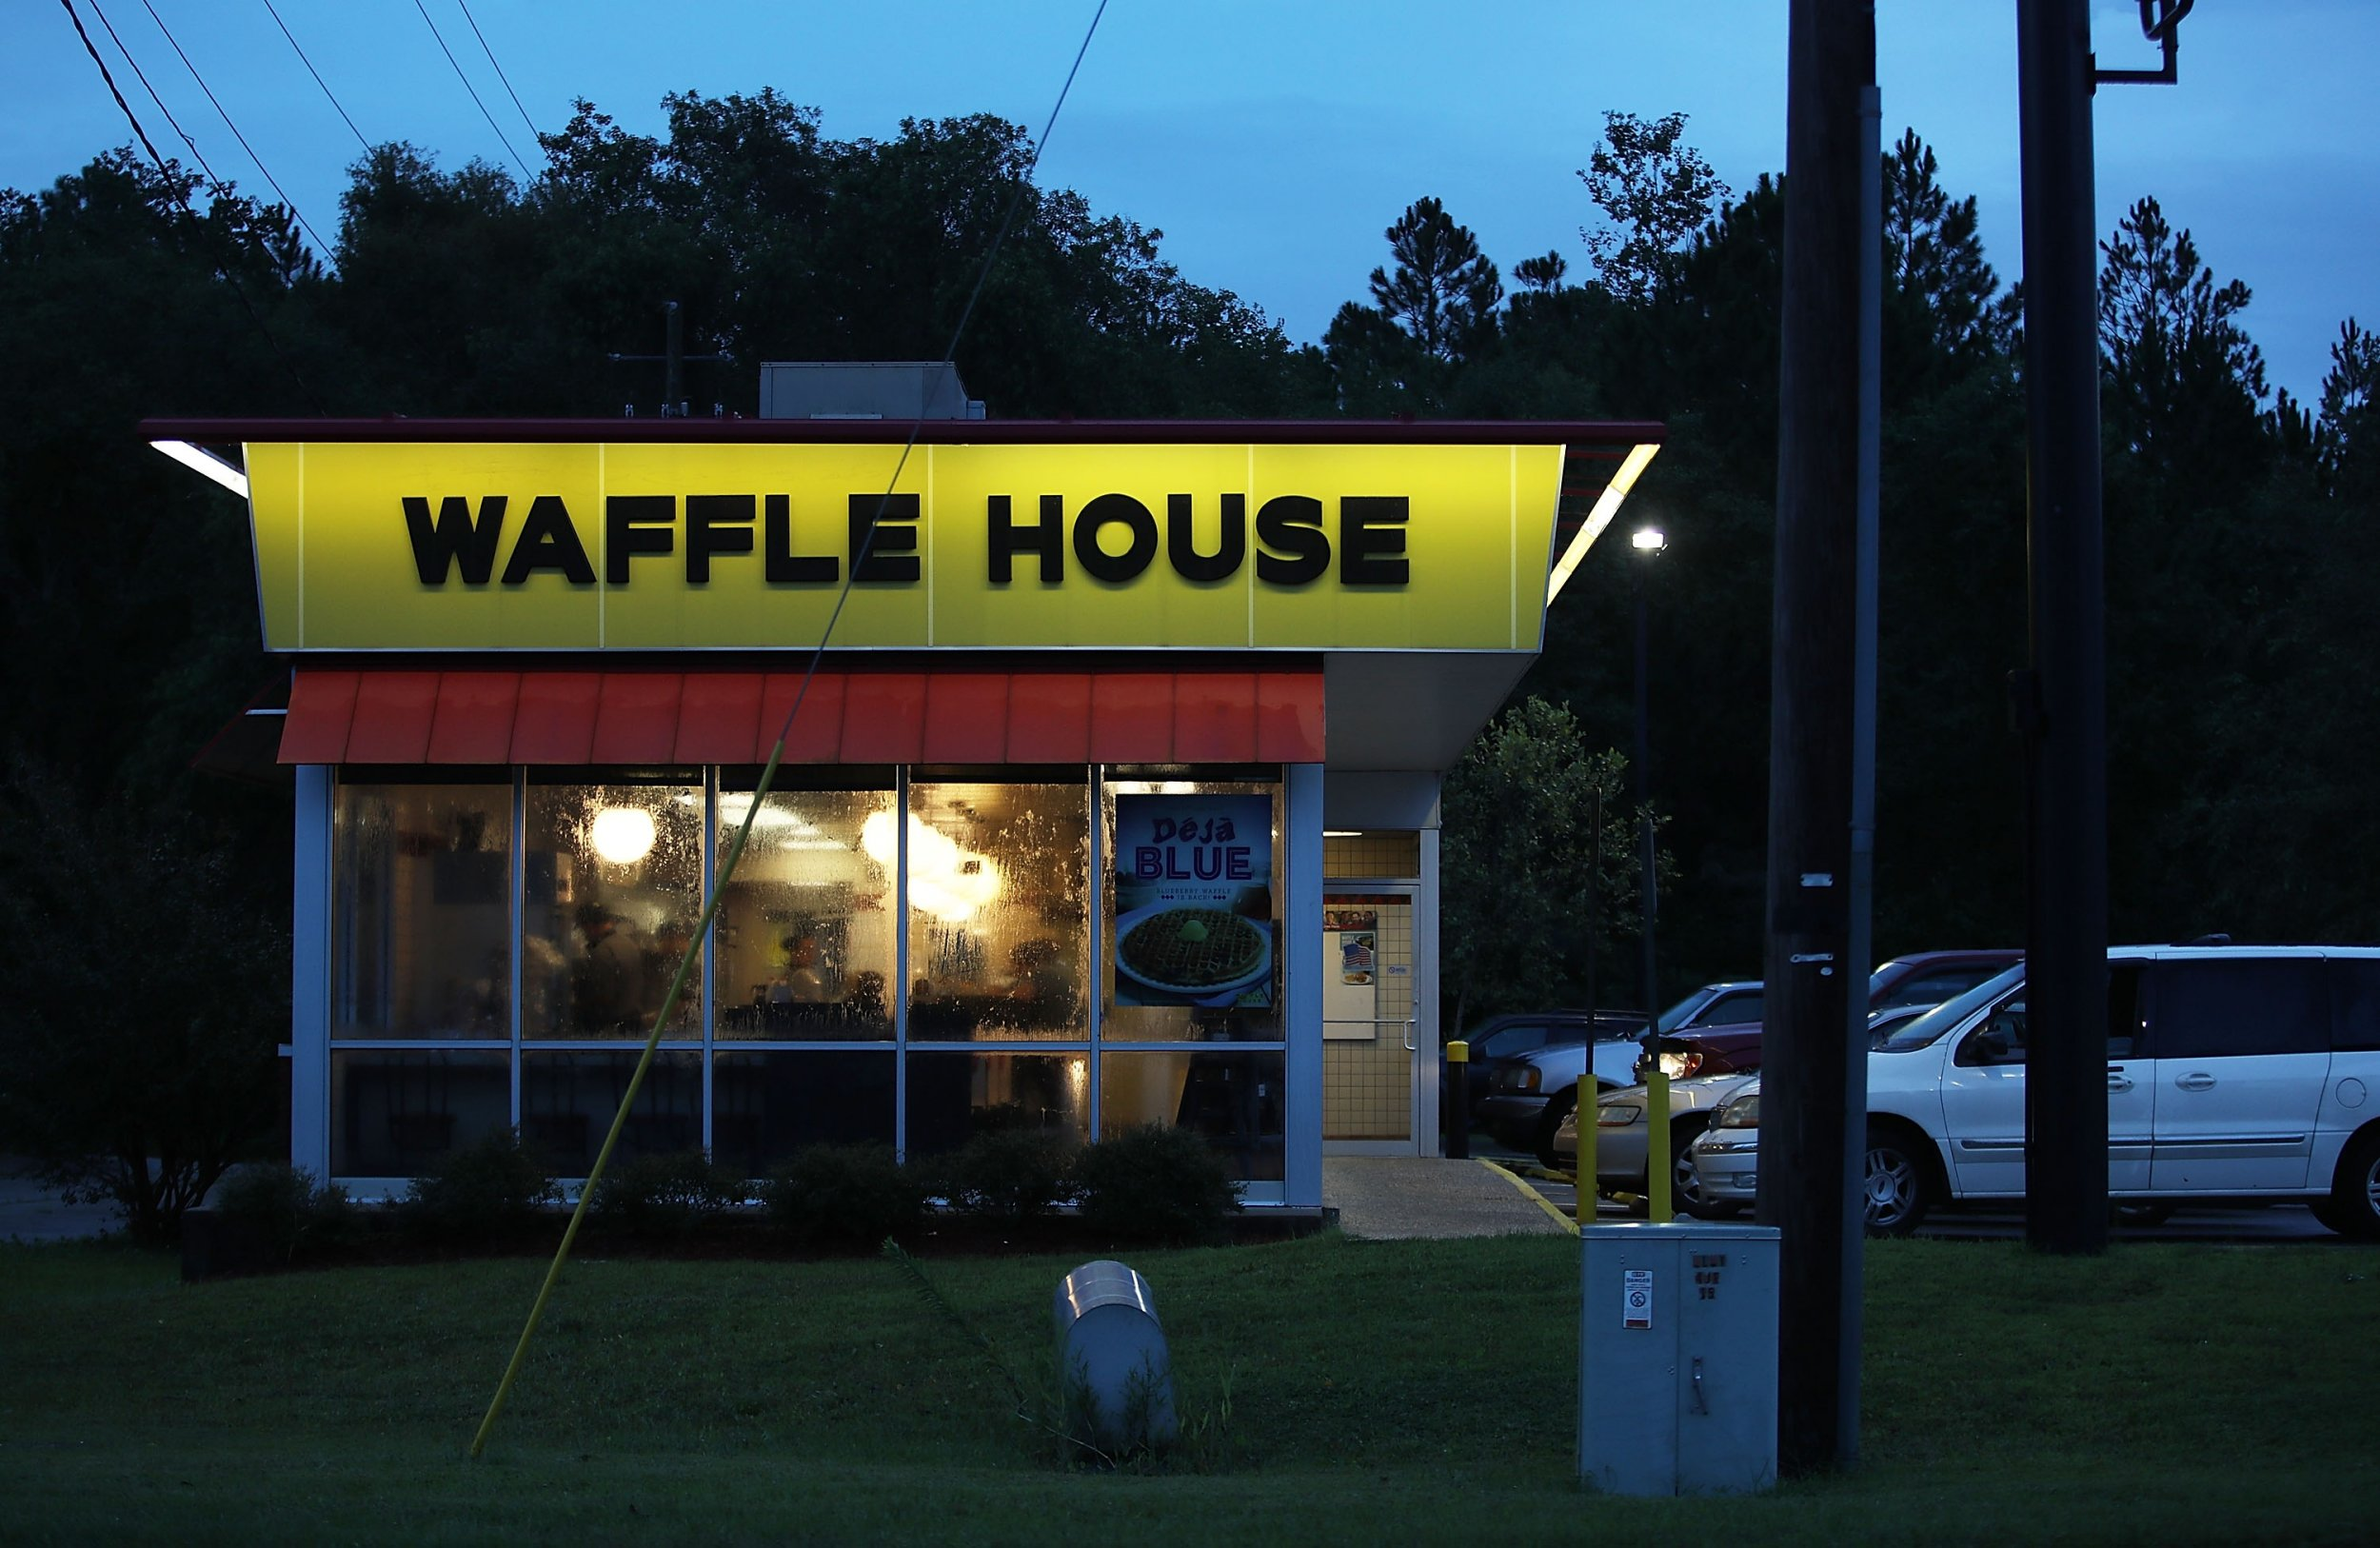 Craig Fugate Explains How The Waffle House Index Came to Be